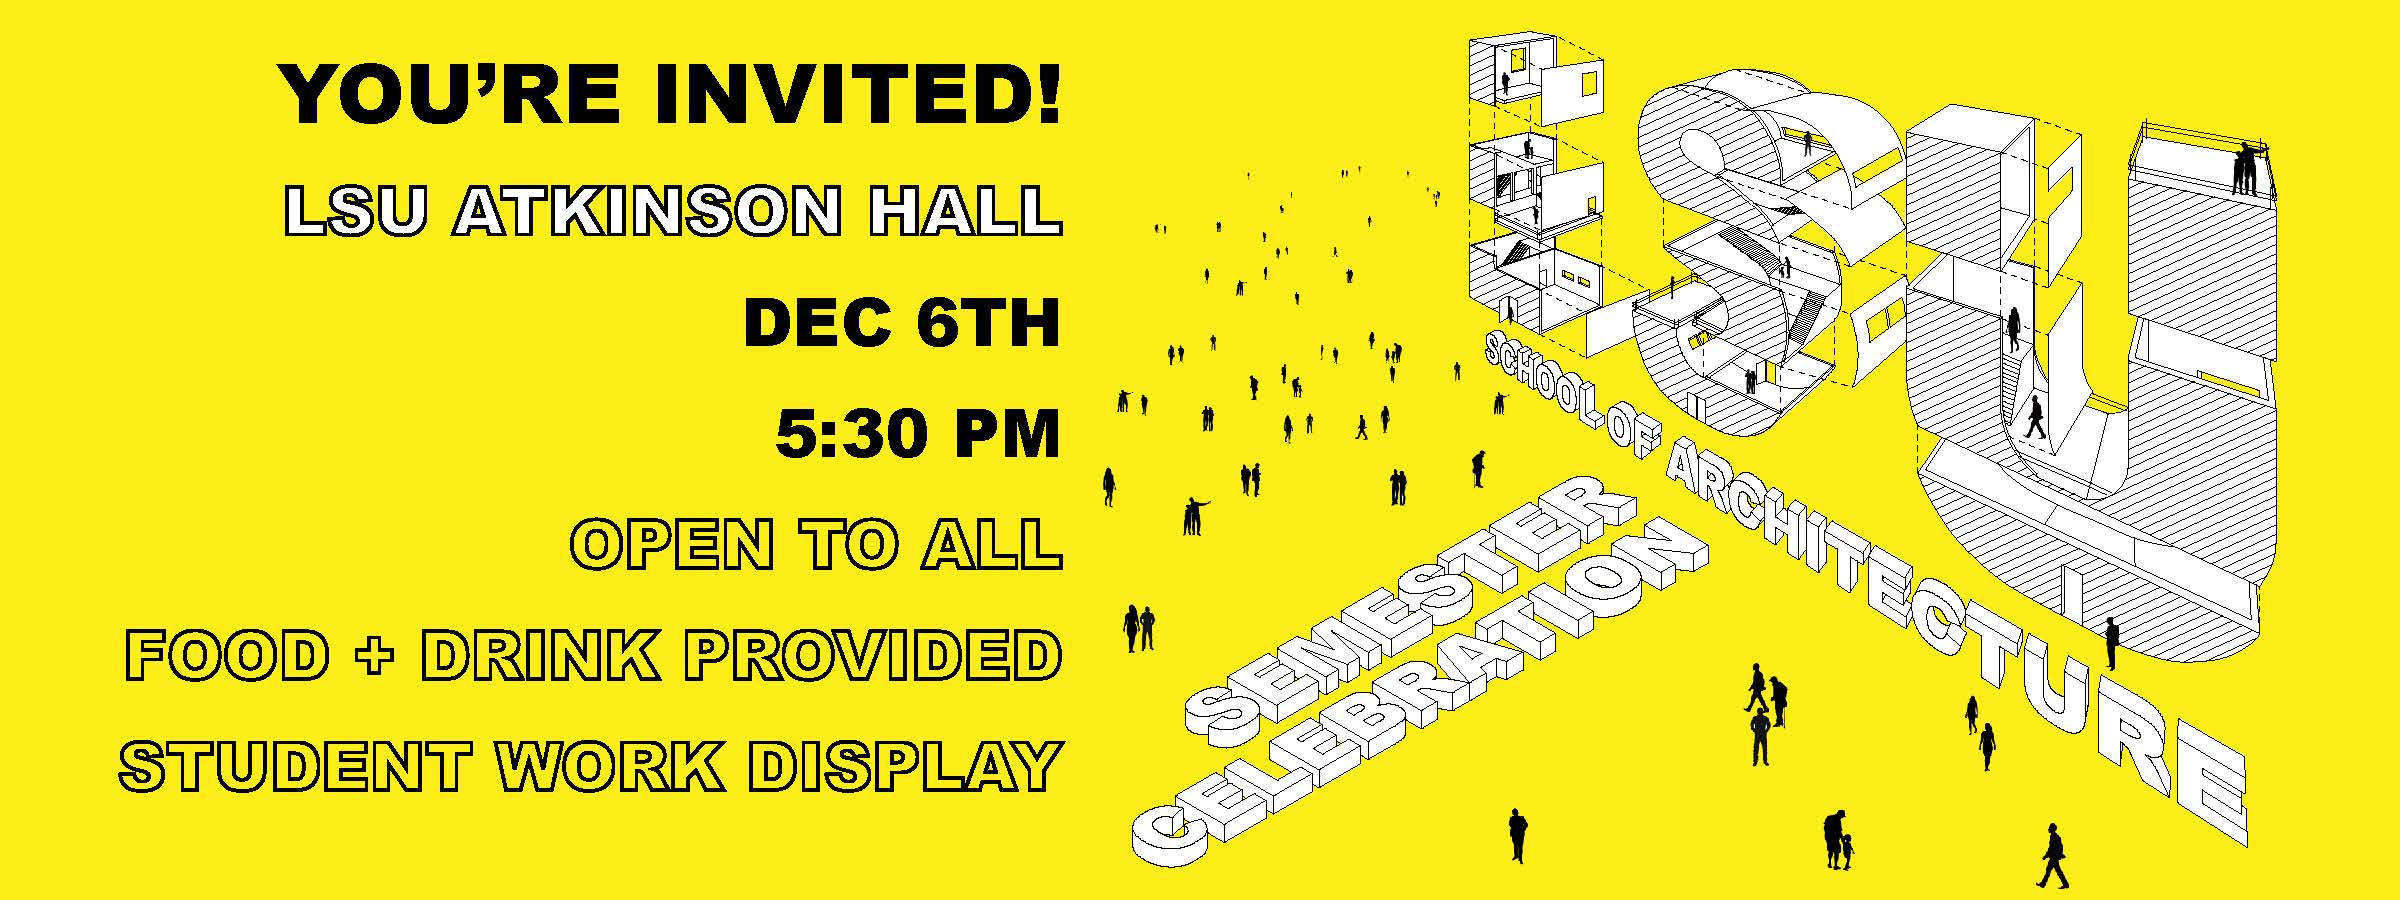 """Yellow graphic with text: """"You're invited! LSU Atkinson Hall Dec. 6th 5:30 pm. Open to all. Food + Drink Provided, Student Work Display."""